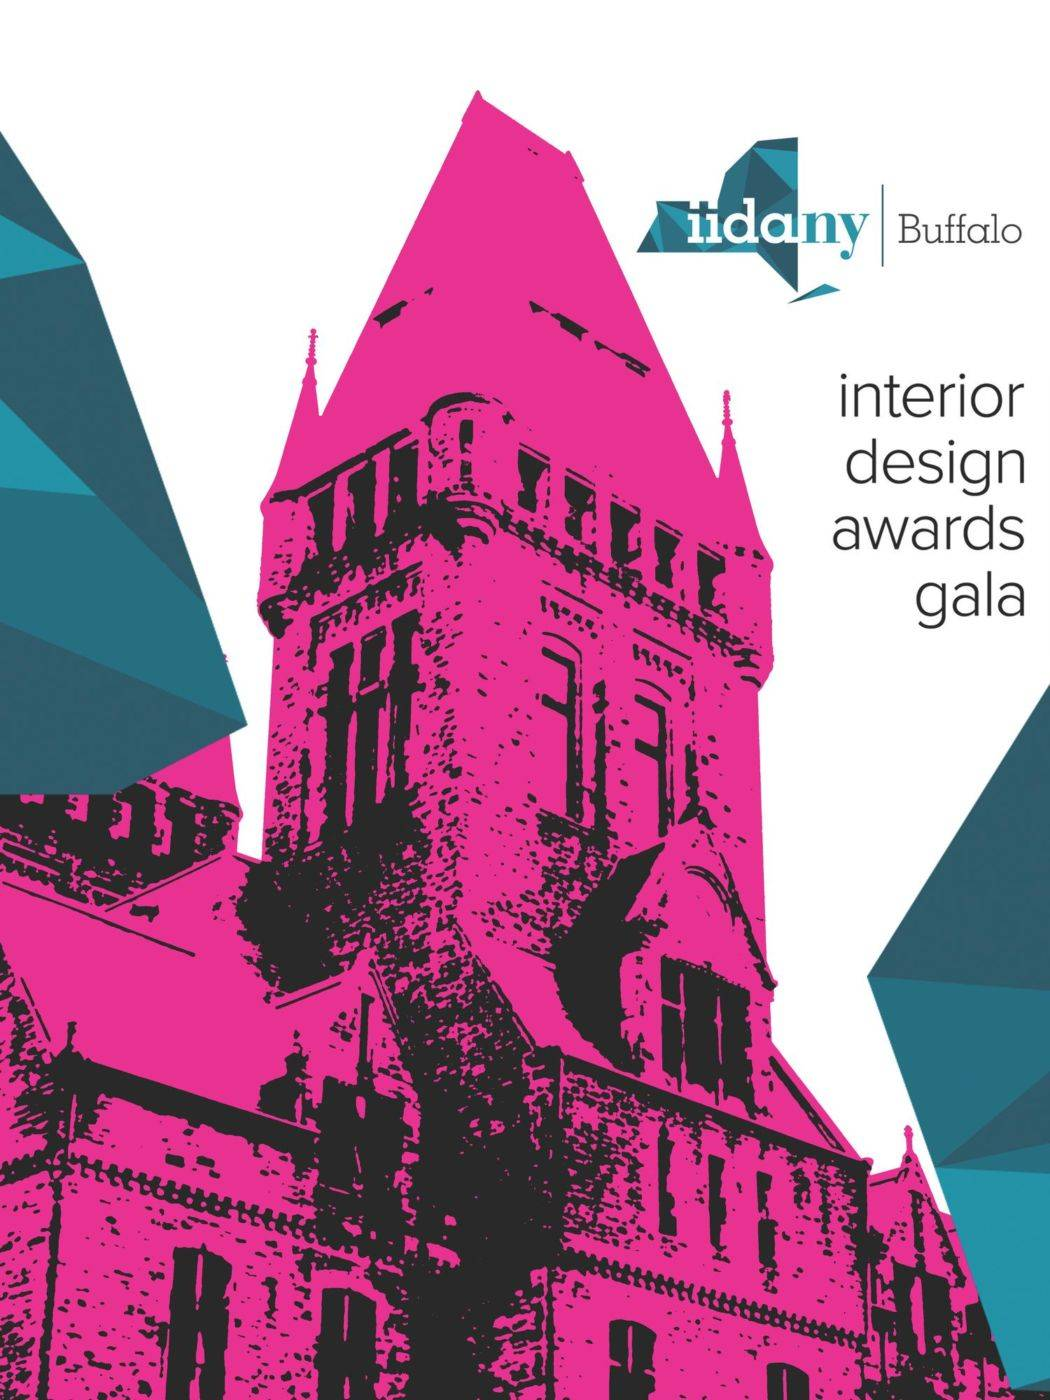 Buffalo city center design awards gala iida ny chapter - Interior design schools buffalo ny ...